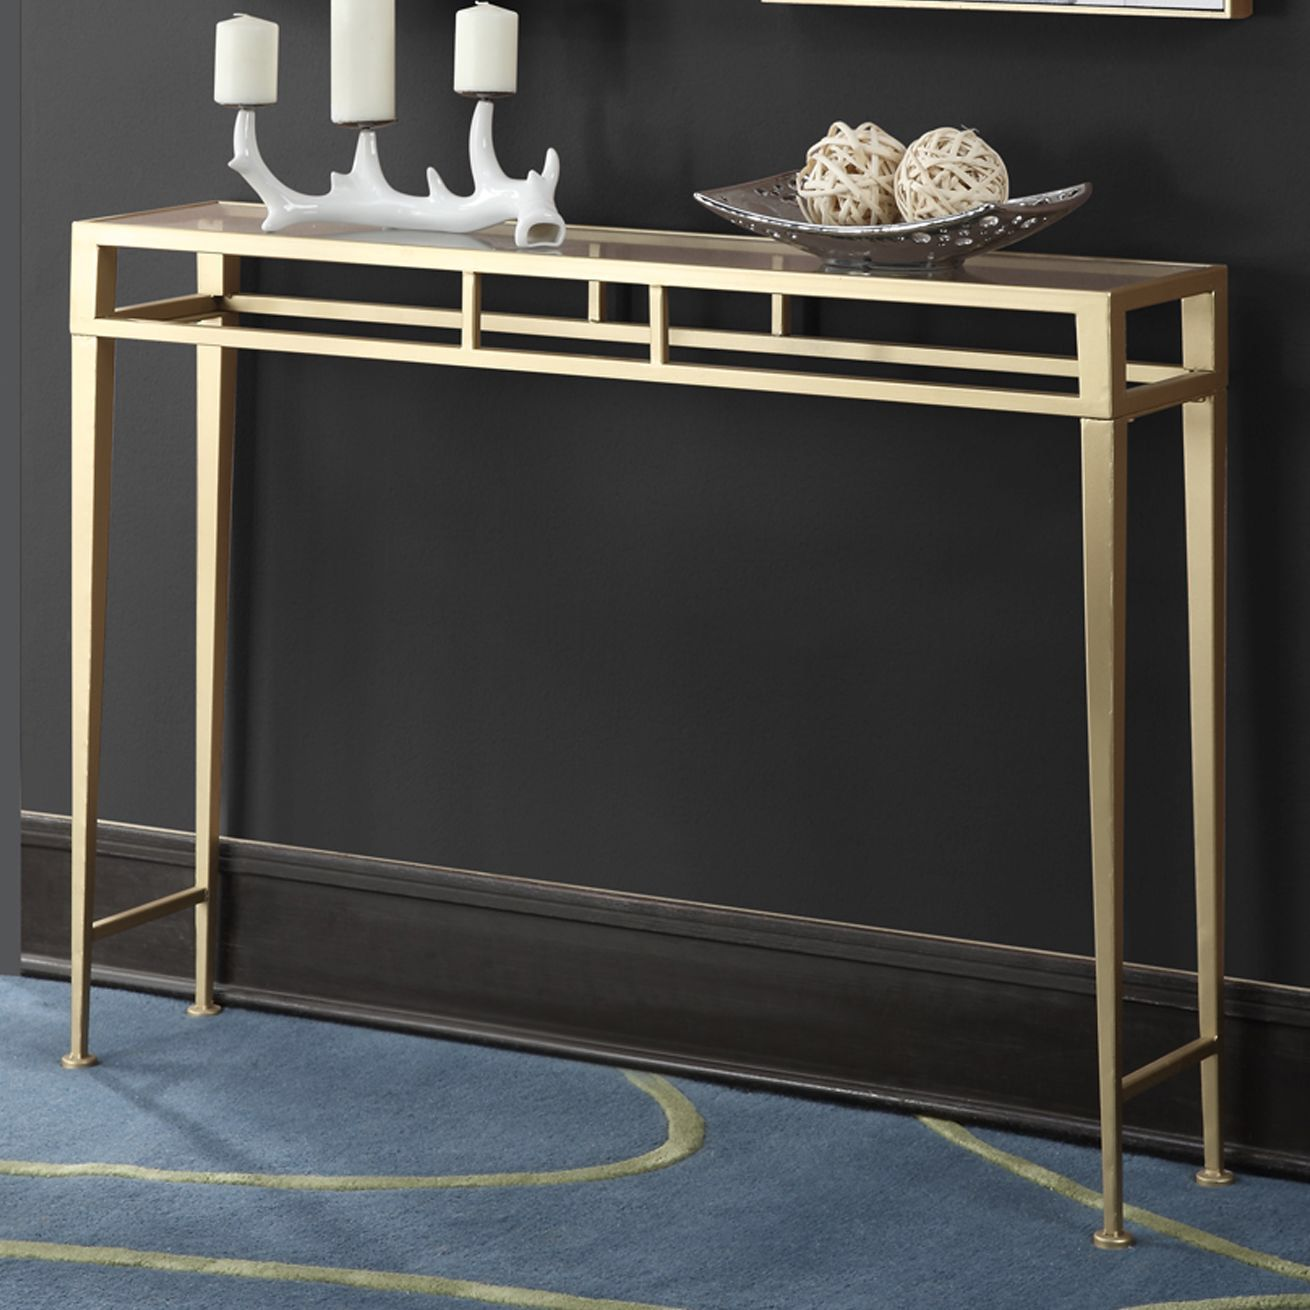 Buy Coffee Table Gold Coast: Gold Coast Console Table